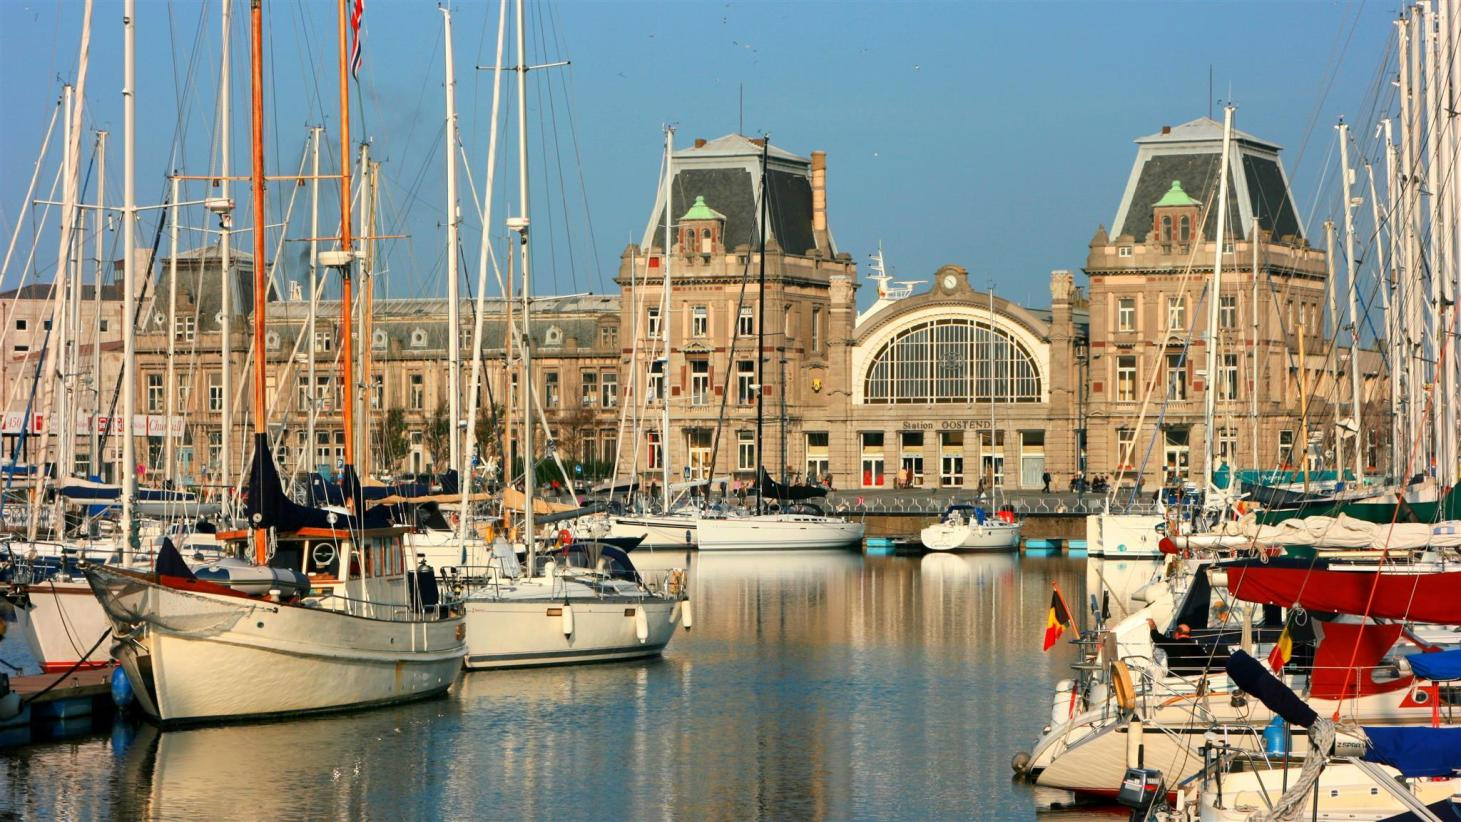 Ostend Hotels (Free Cancellation Available) | 2020 Deals, Photos ...